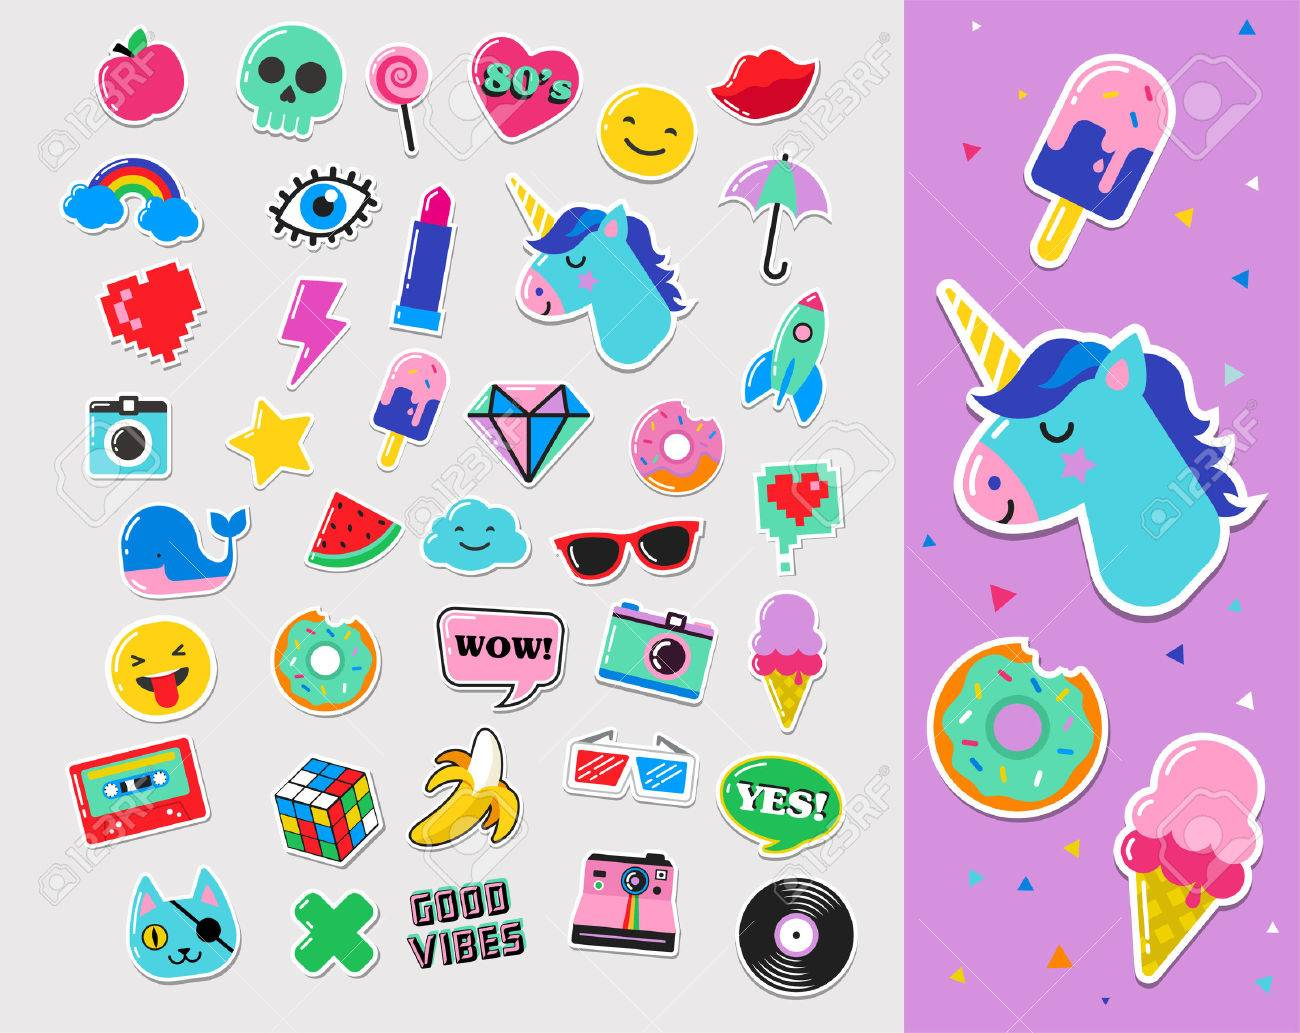 Pop art fashion chic patches, pins, badges, cartoons and stickers - 64662928